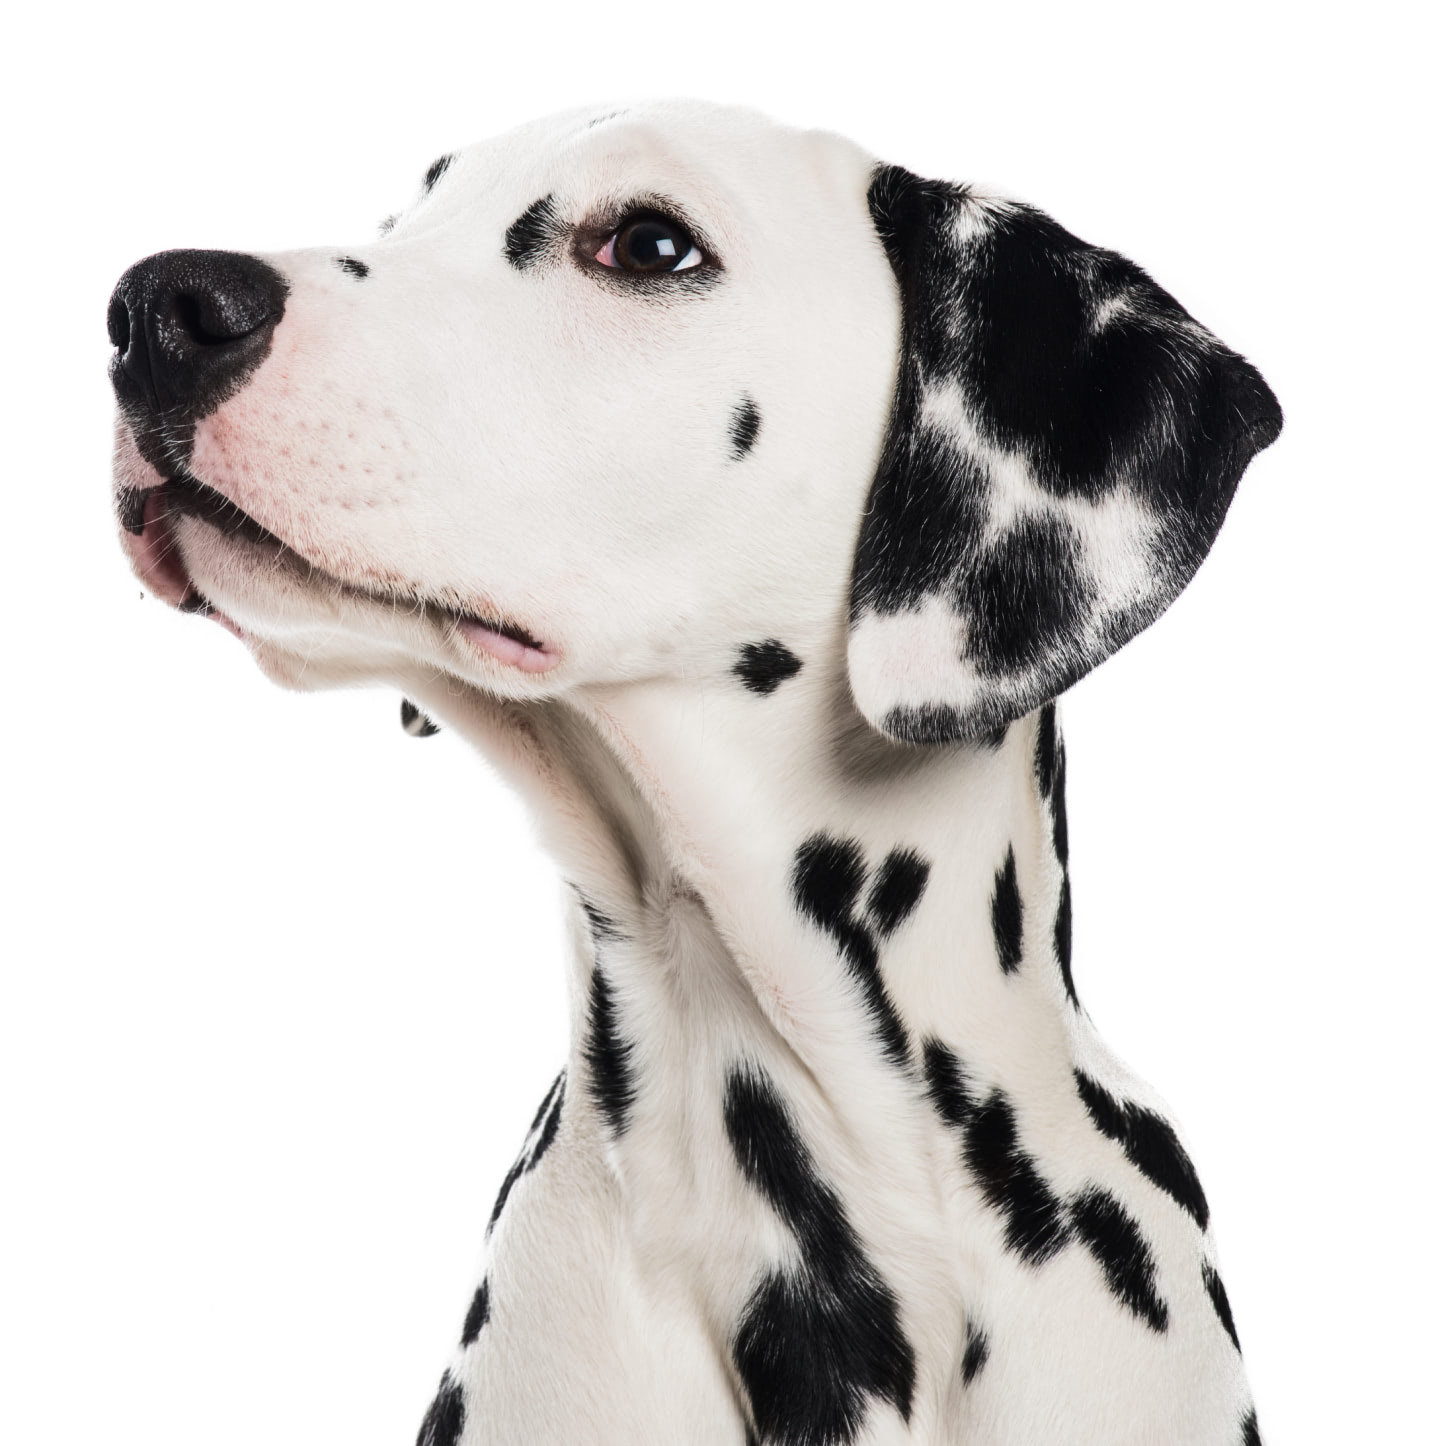 A dalmation looking up